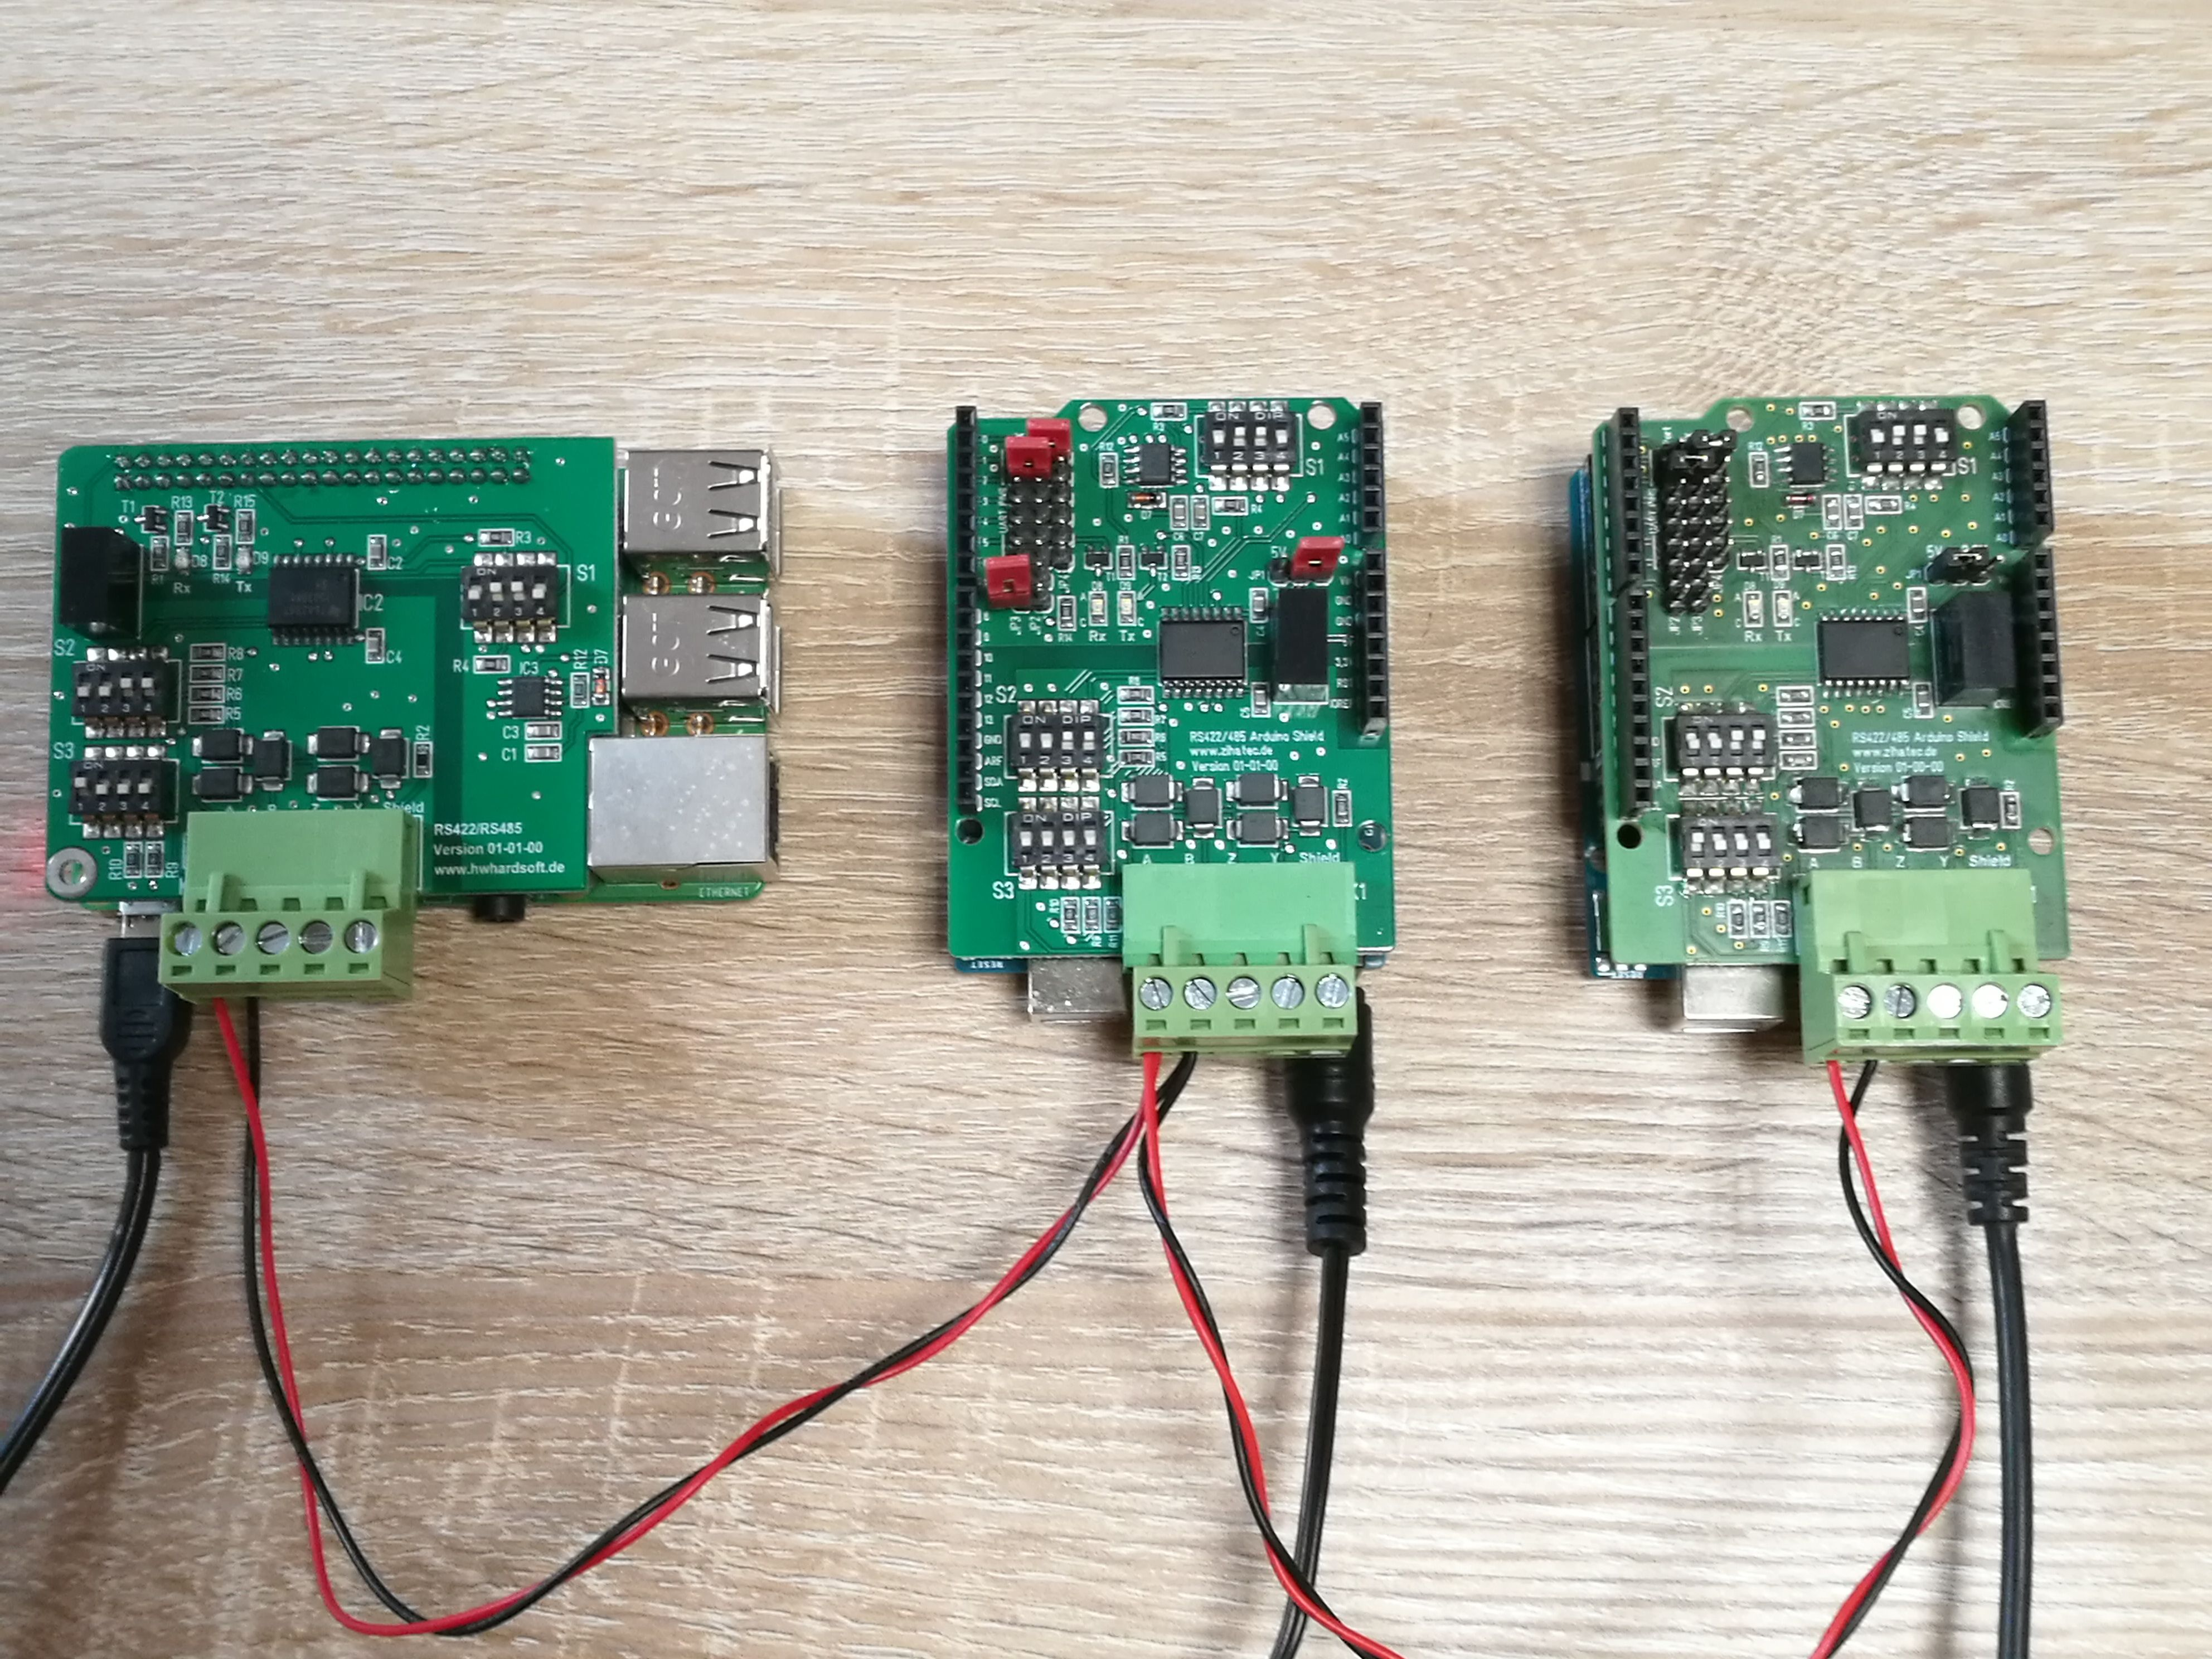 Test run of a RS485 connection of a Raspberry Pi (left